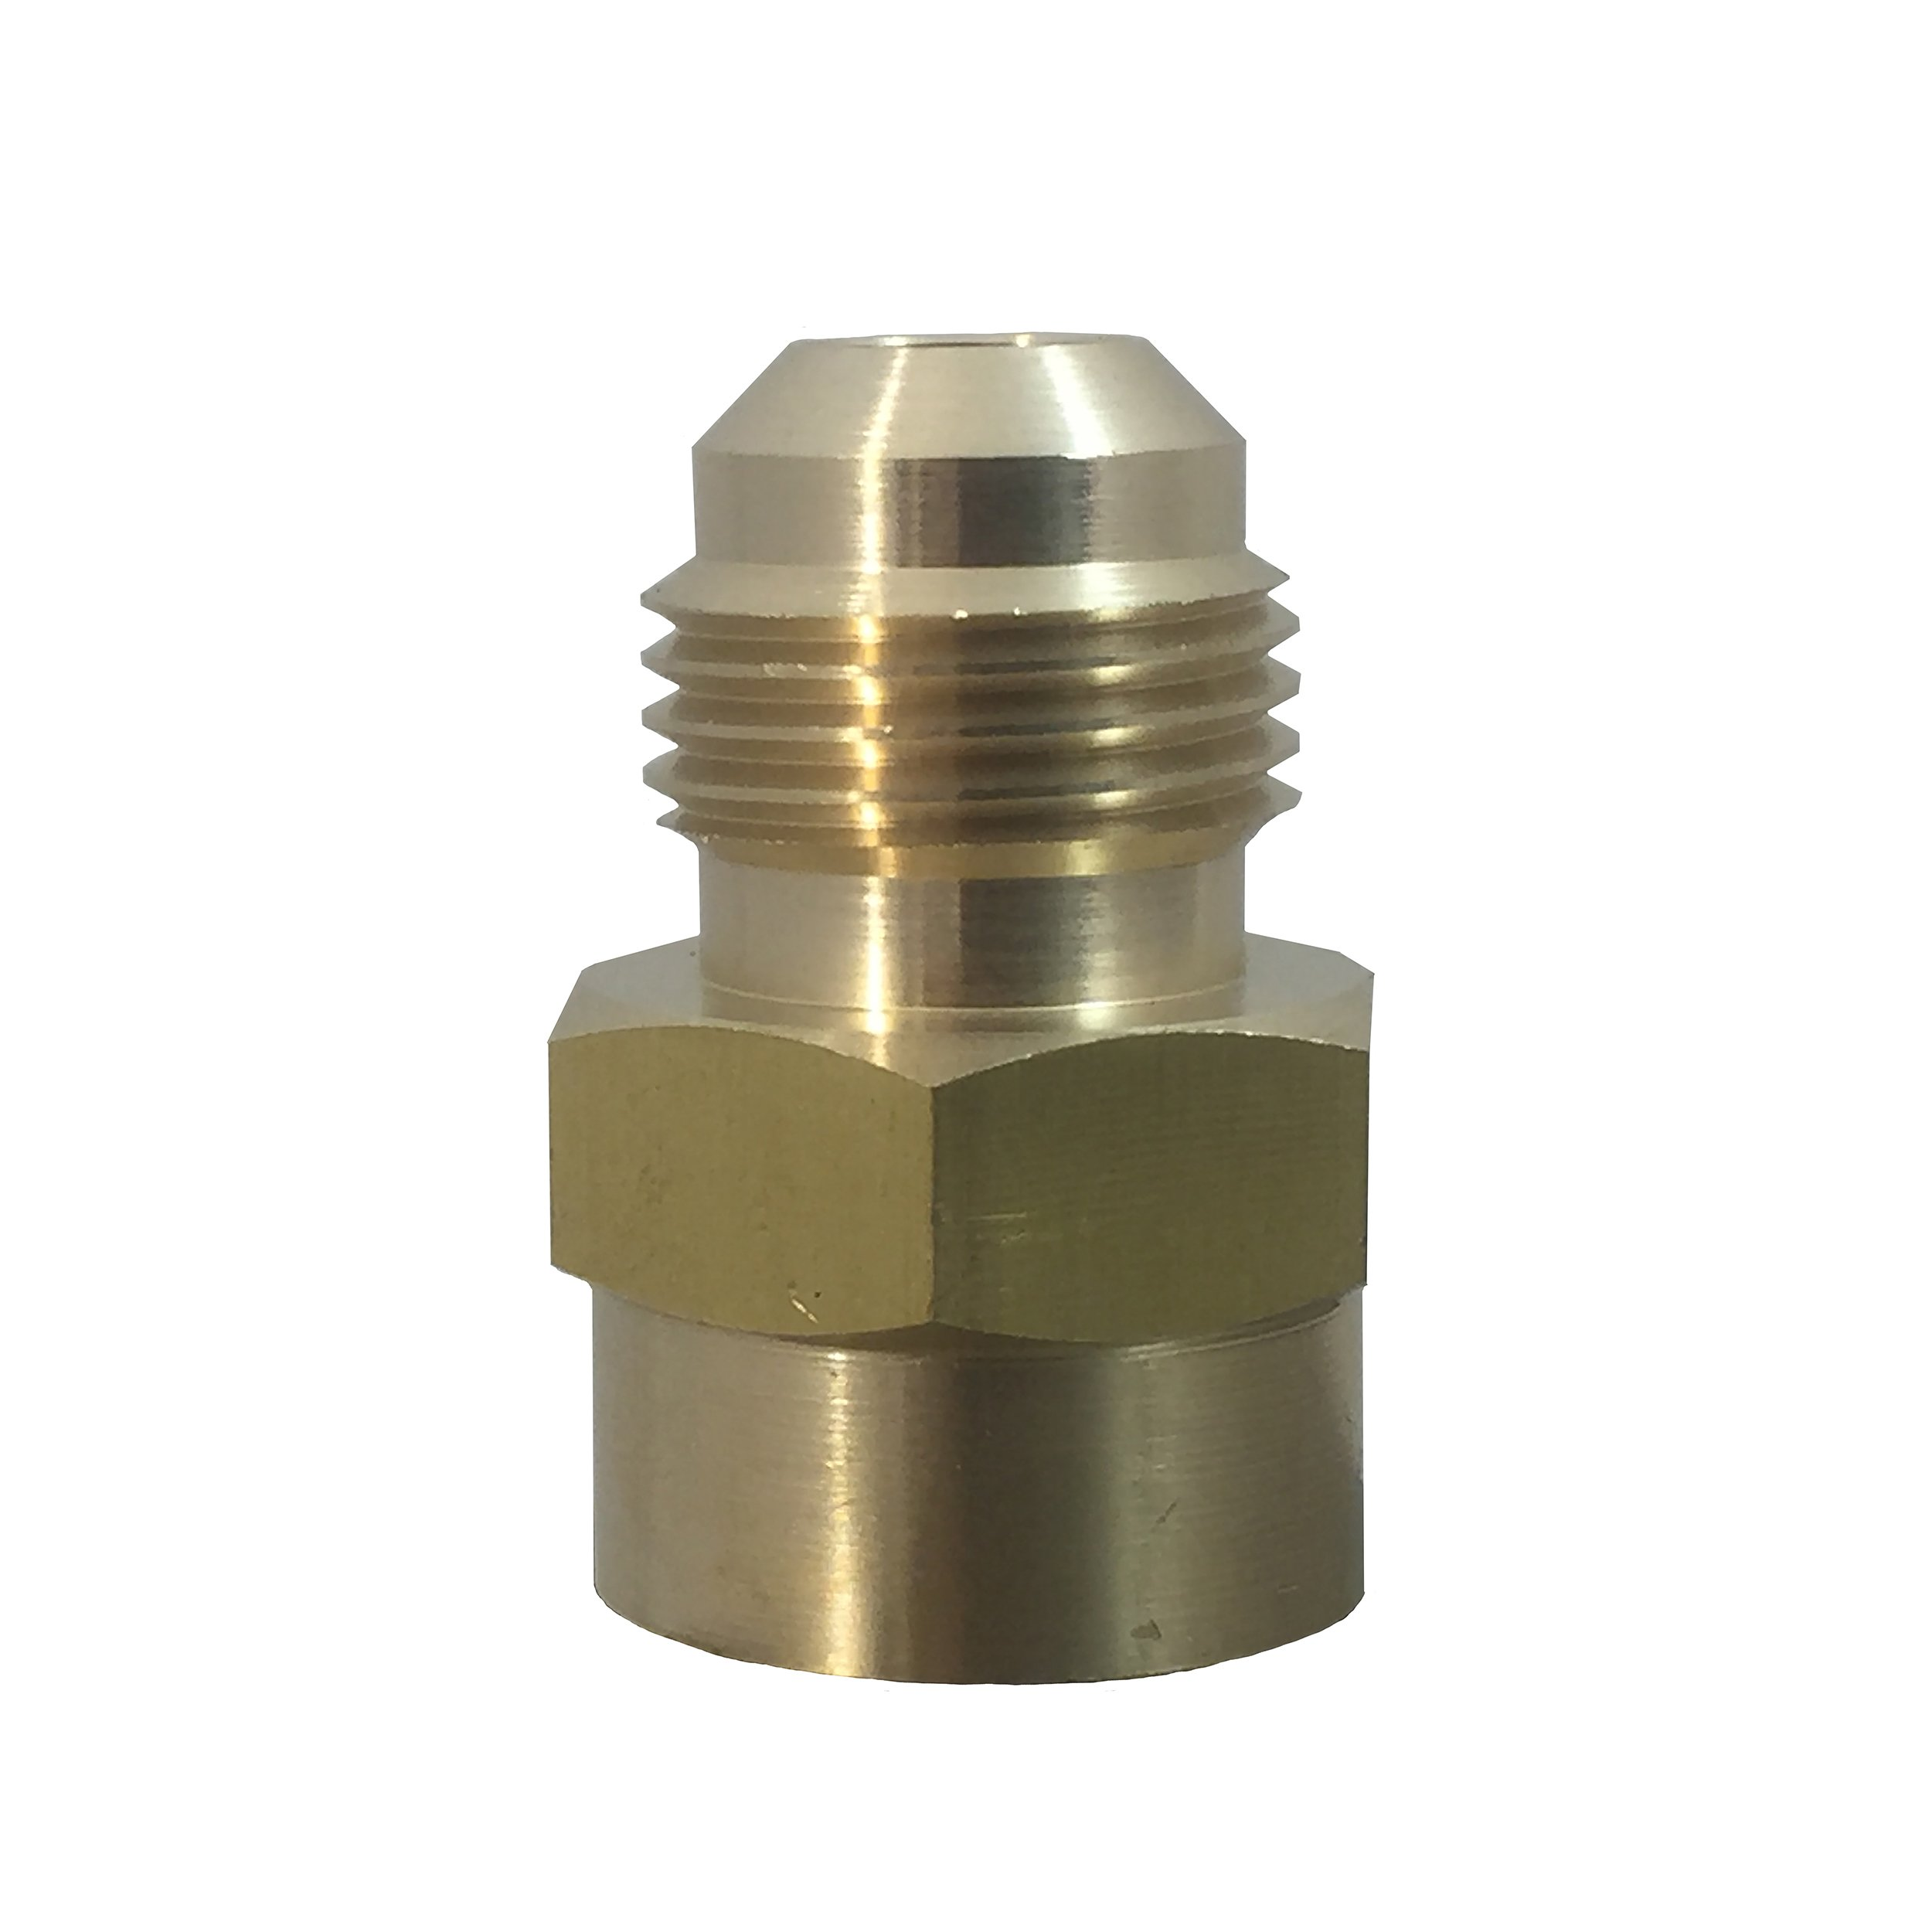 LASCO 17-5833 3//8-Inch Female Flare by 1//2-Inch Male Flare Brass Adapter